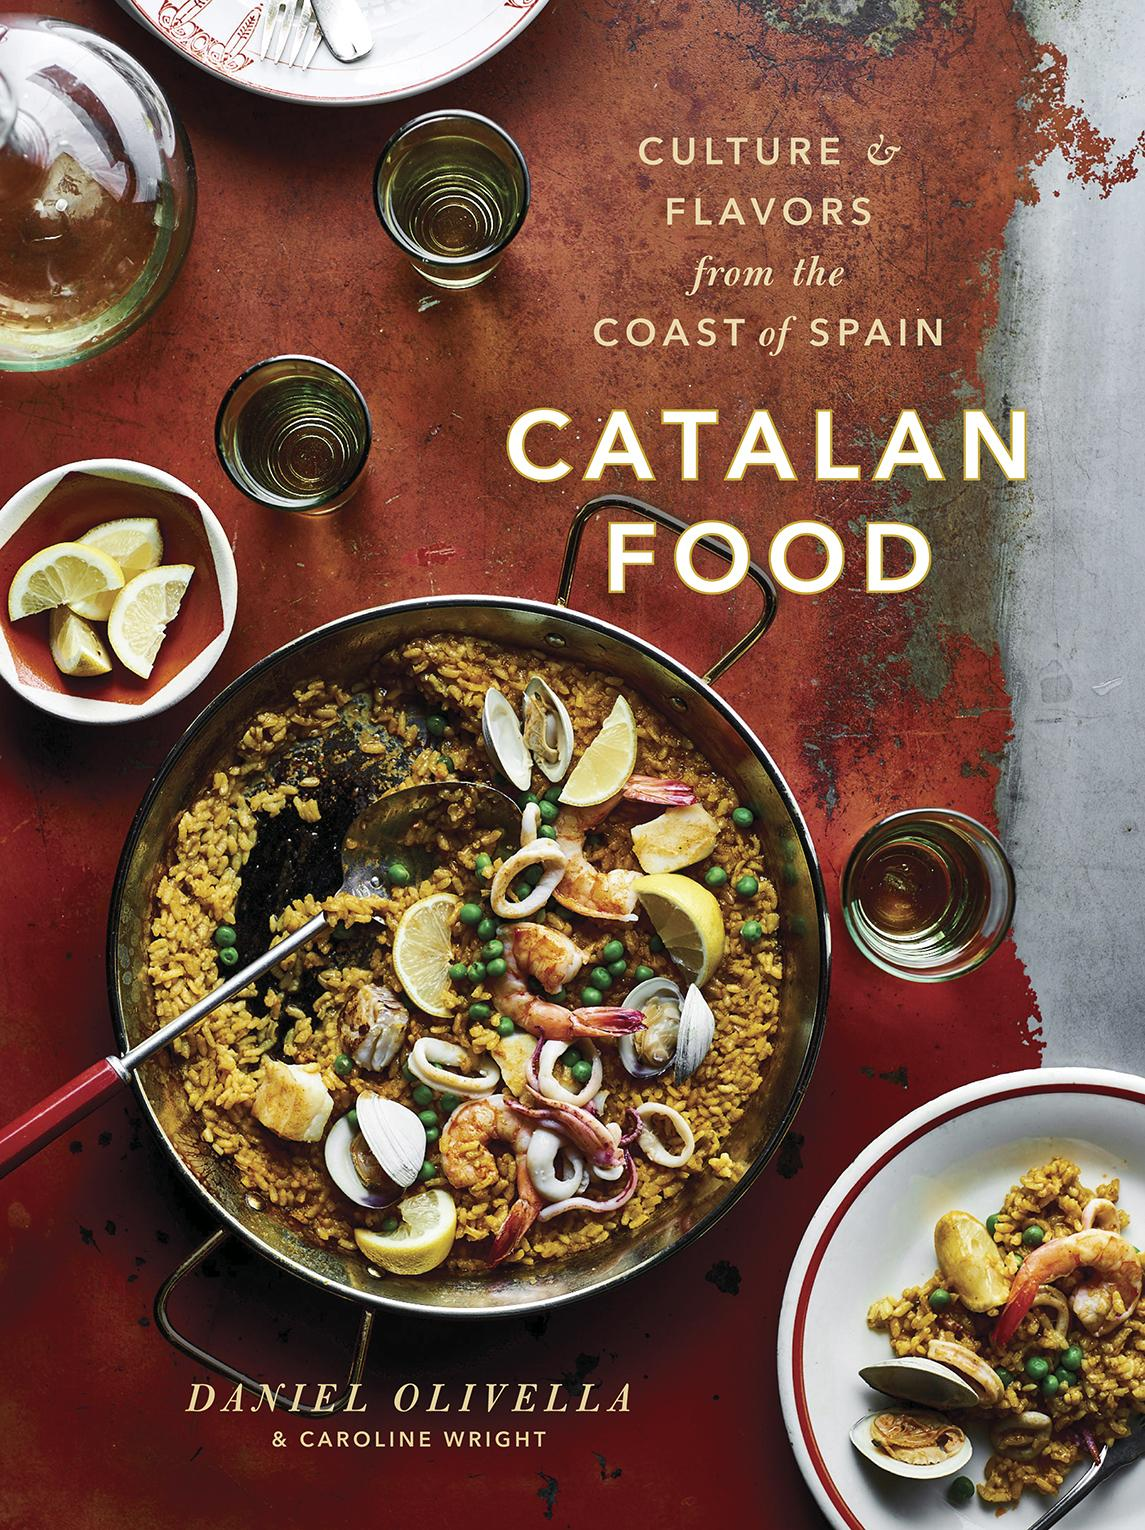 Food Book Cover Queensland : Catalan food culture and flavors from the mediterranean